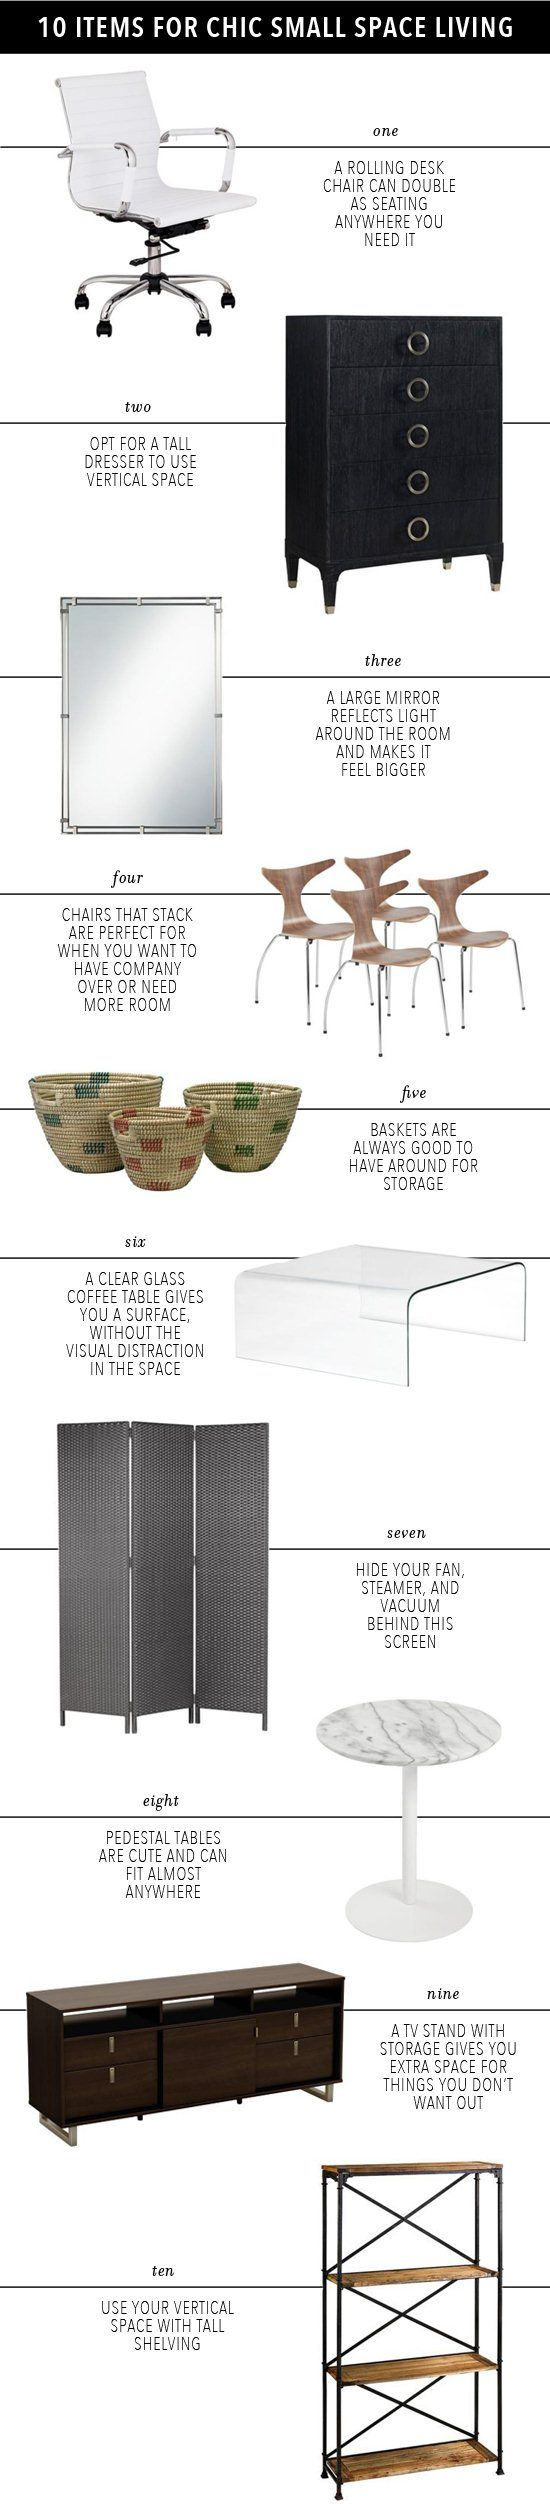 10 Essentials for Chic Small Space Living | Blogged on